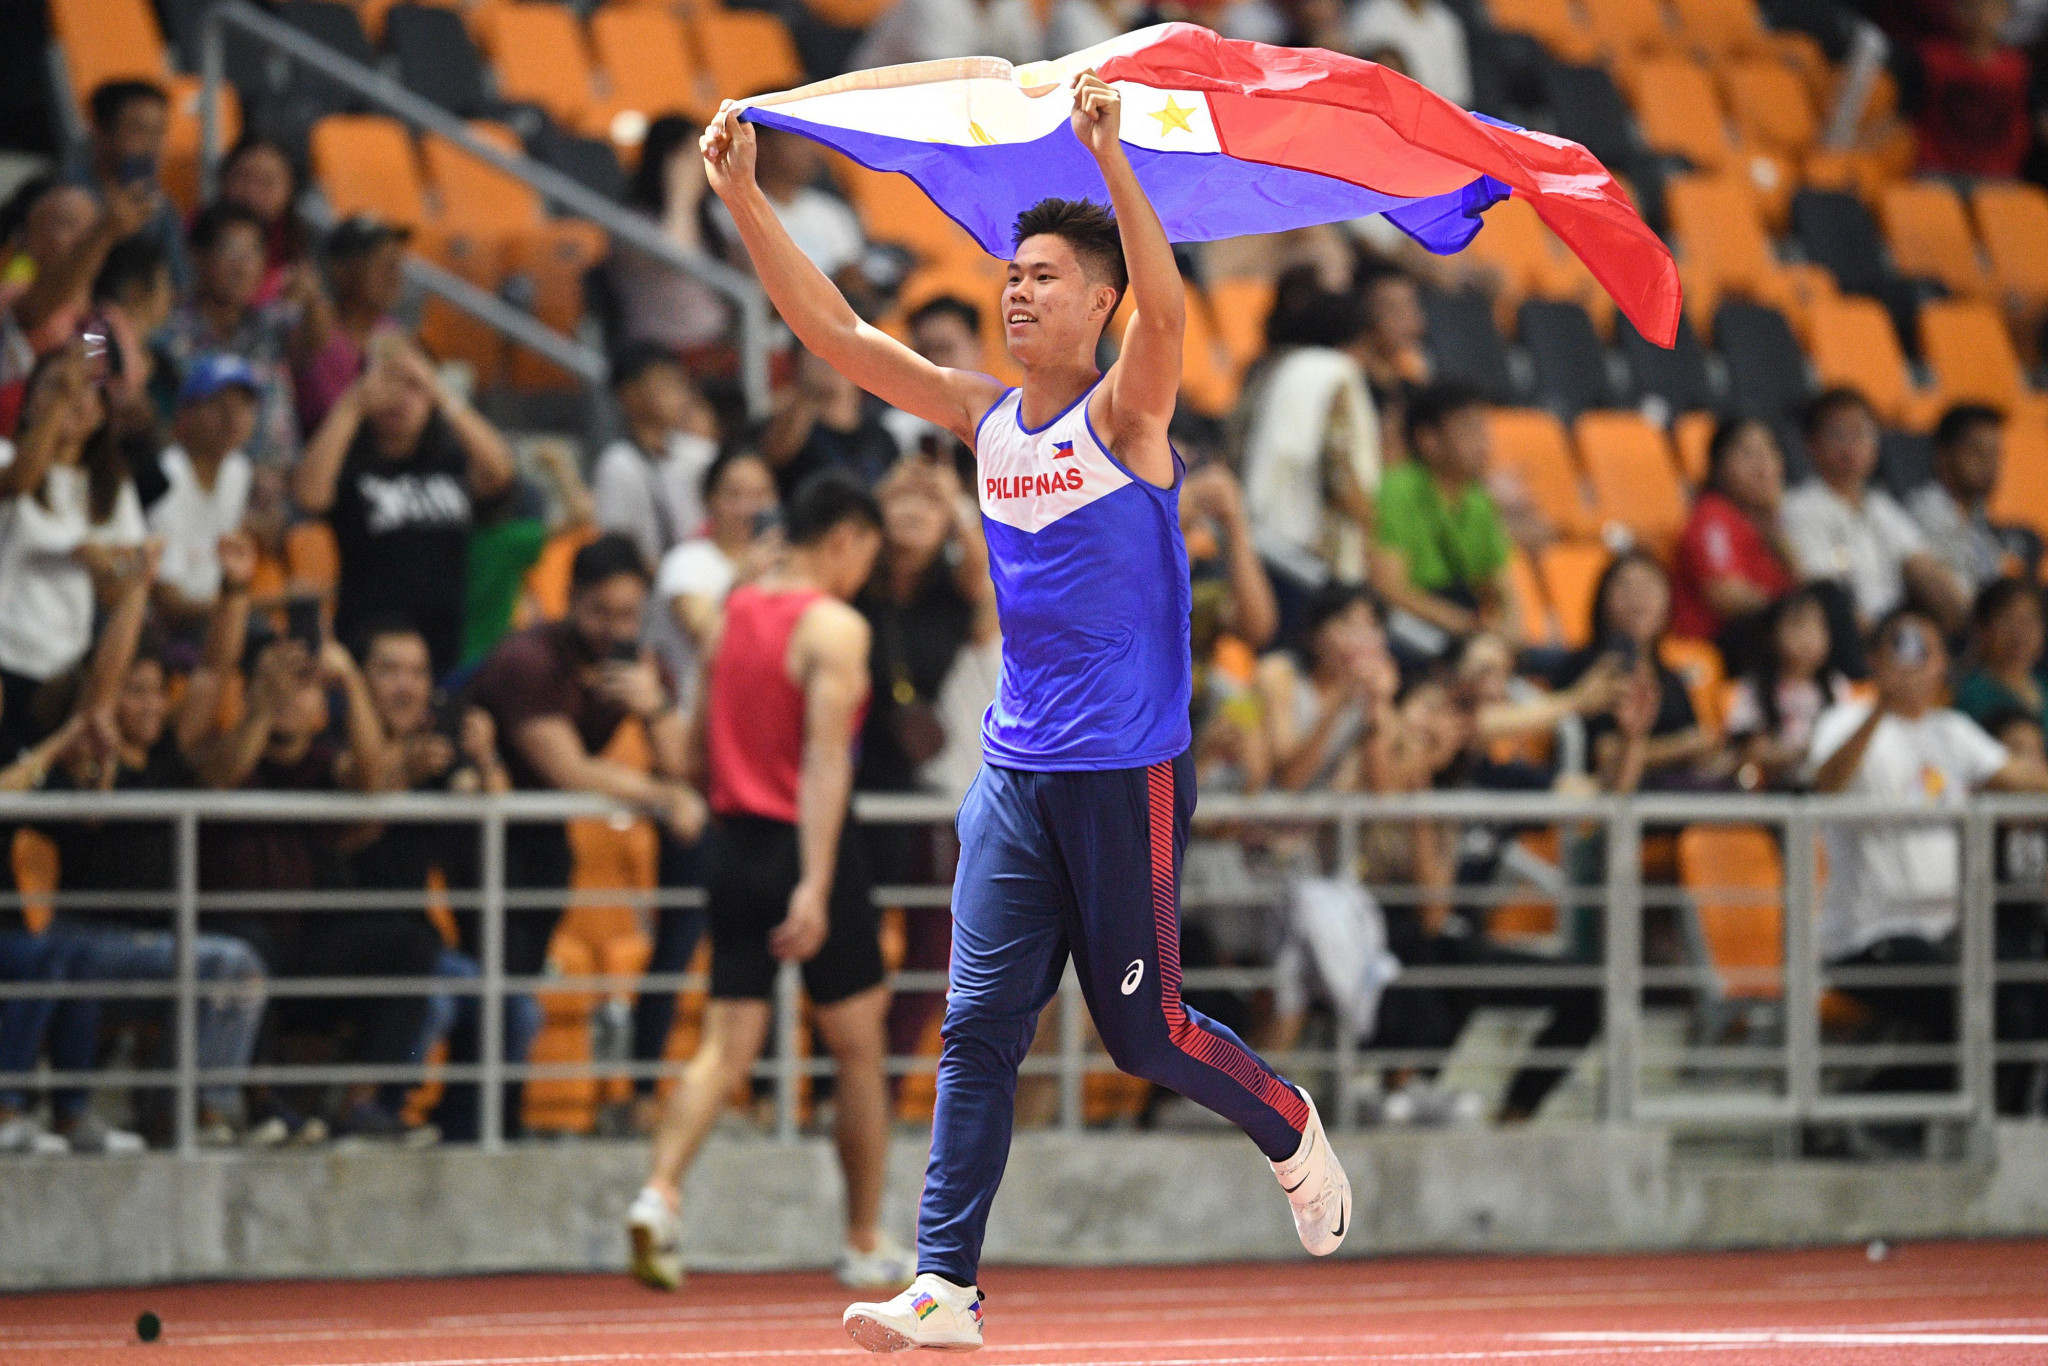 Asian pole vault champion Obiena returns to basics after Tokyo 2020 postponement